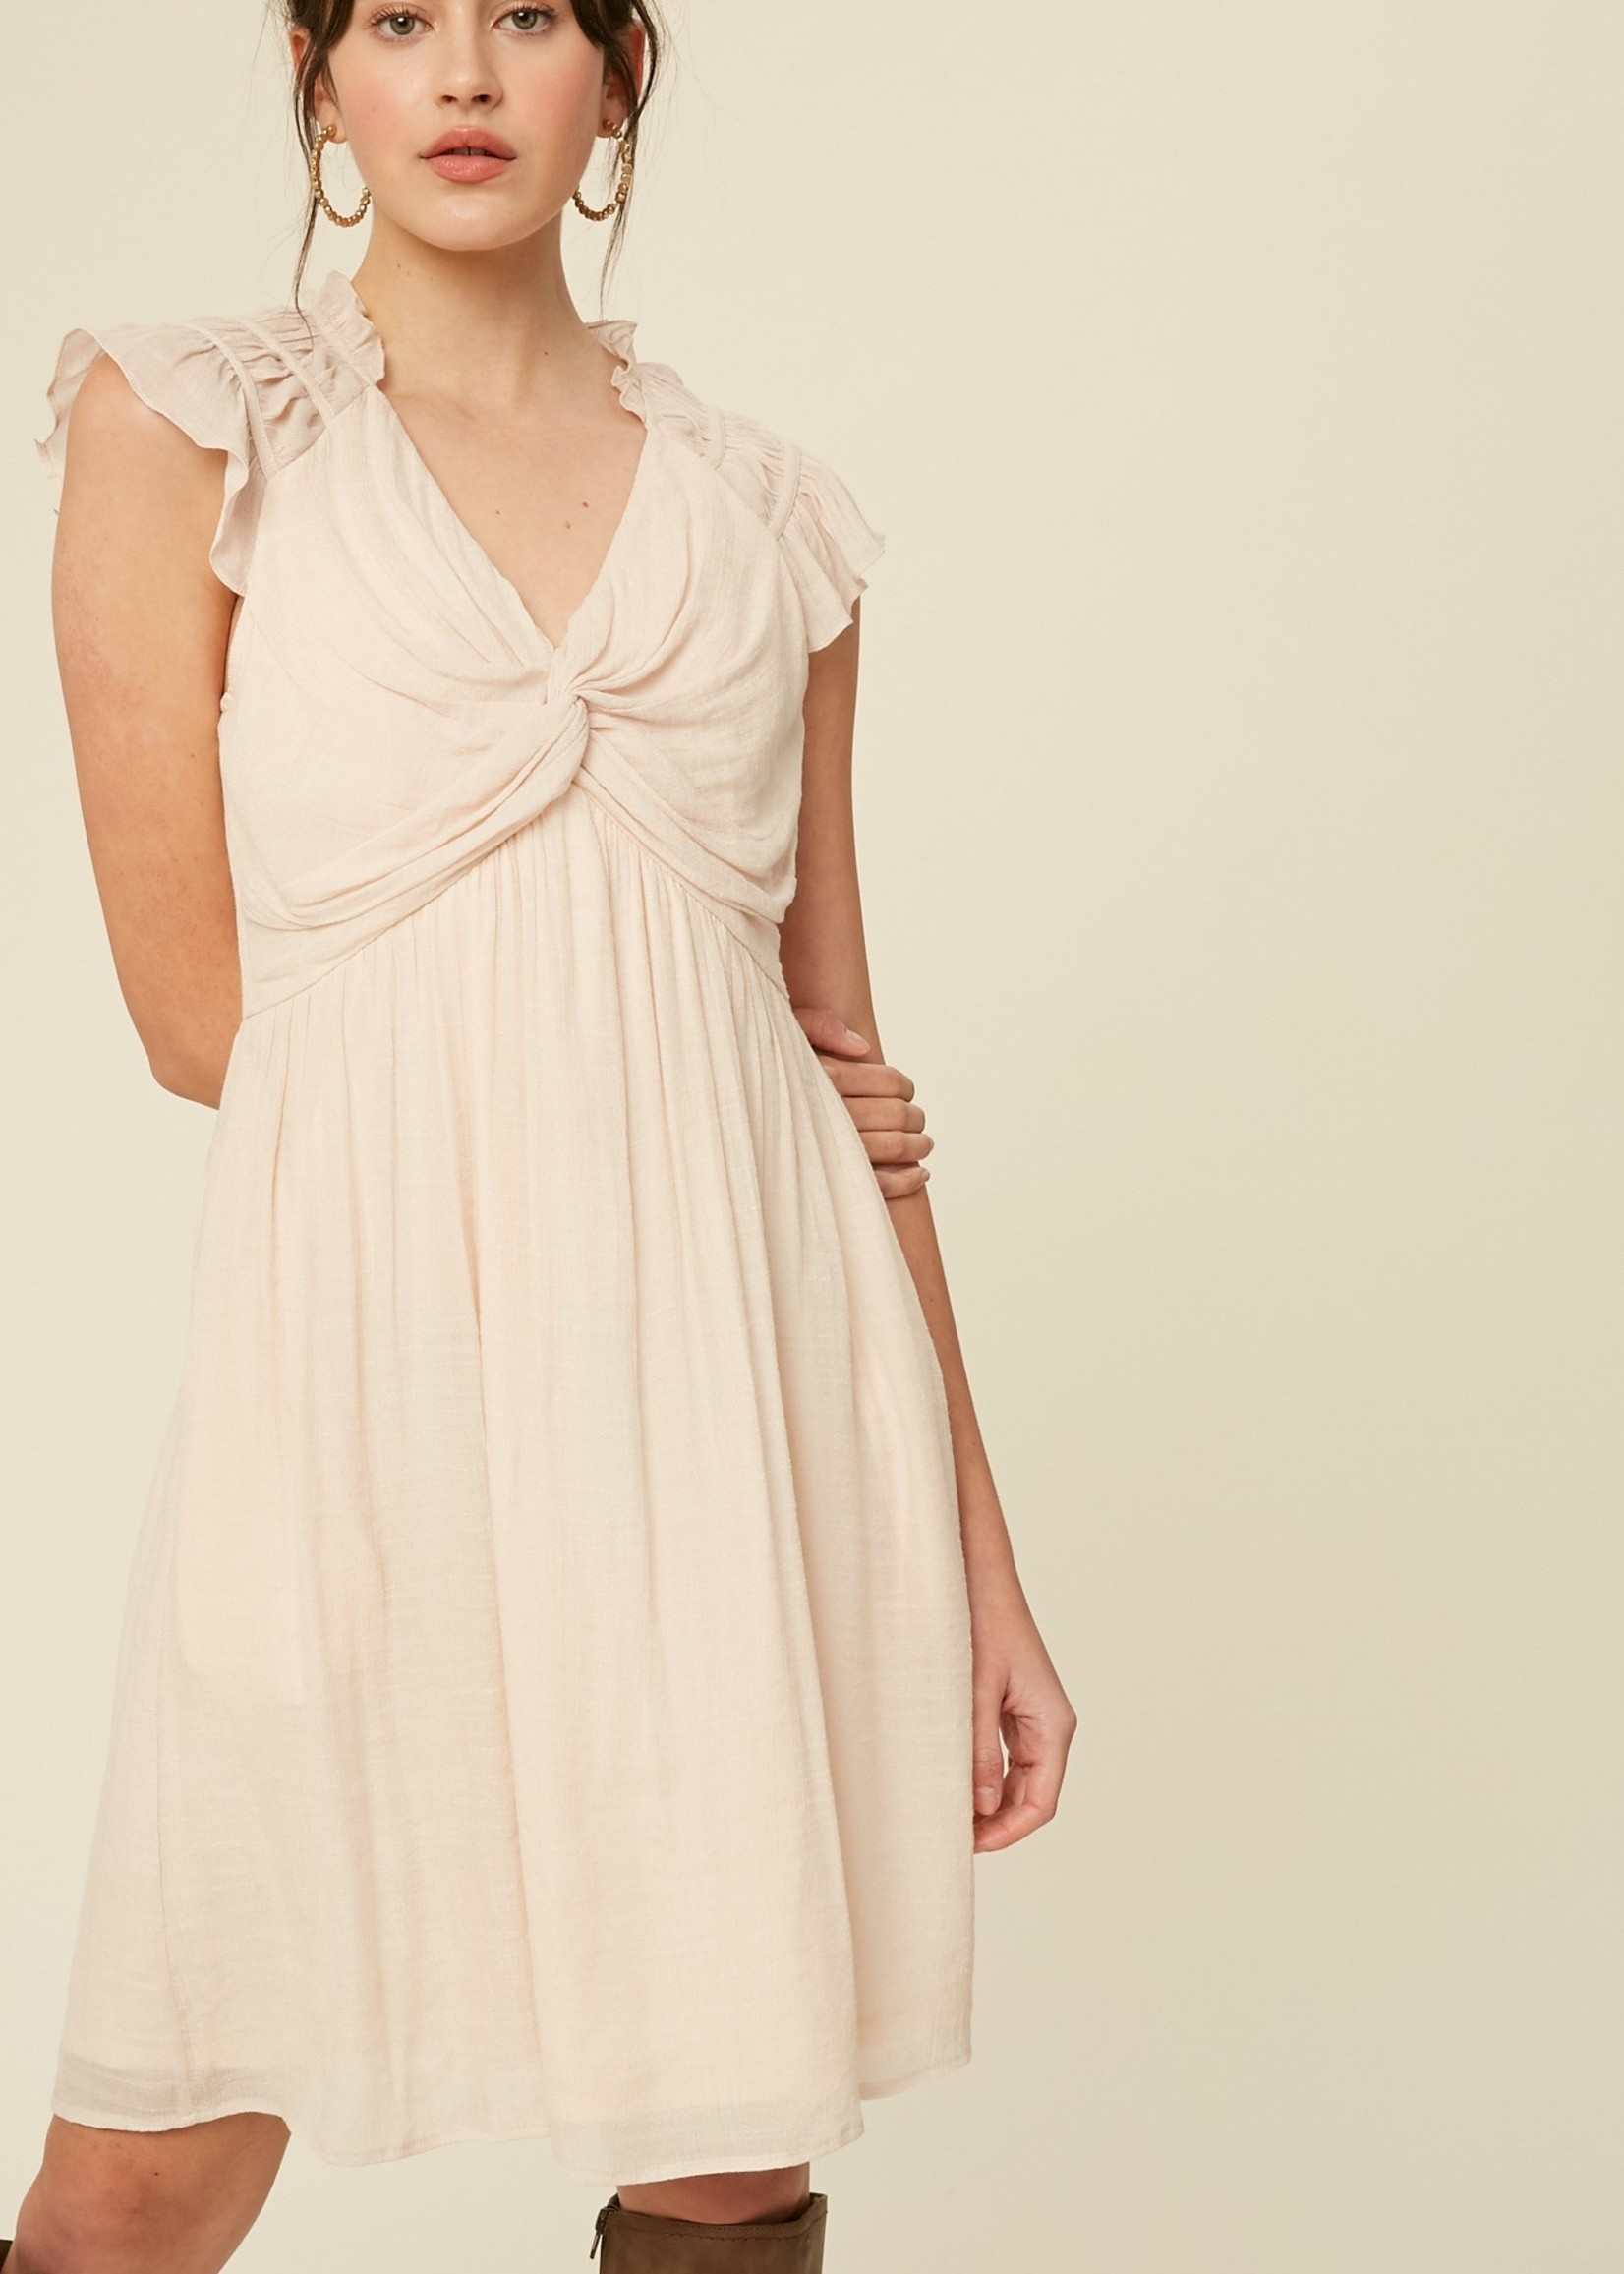 Crinkle Cotton Front Knot Dress - Ivory